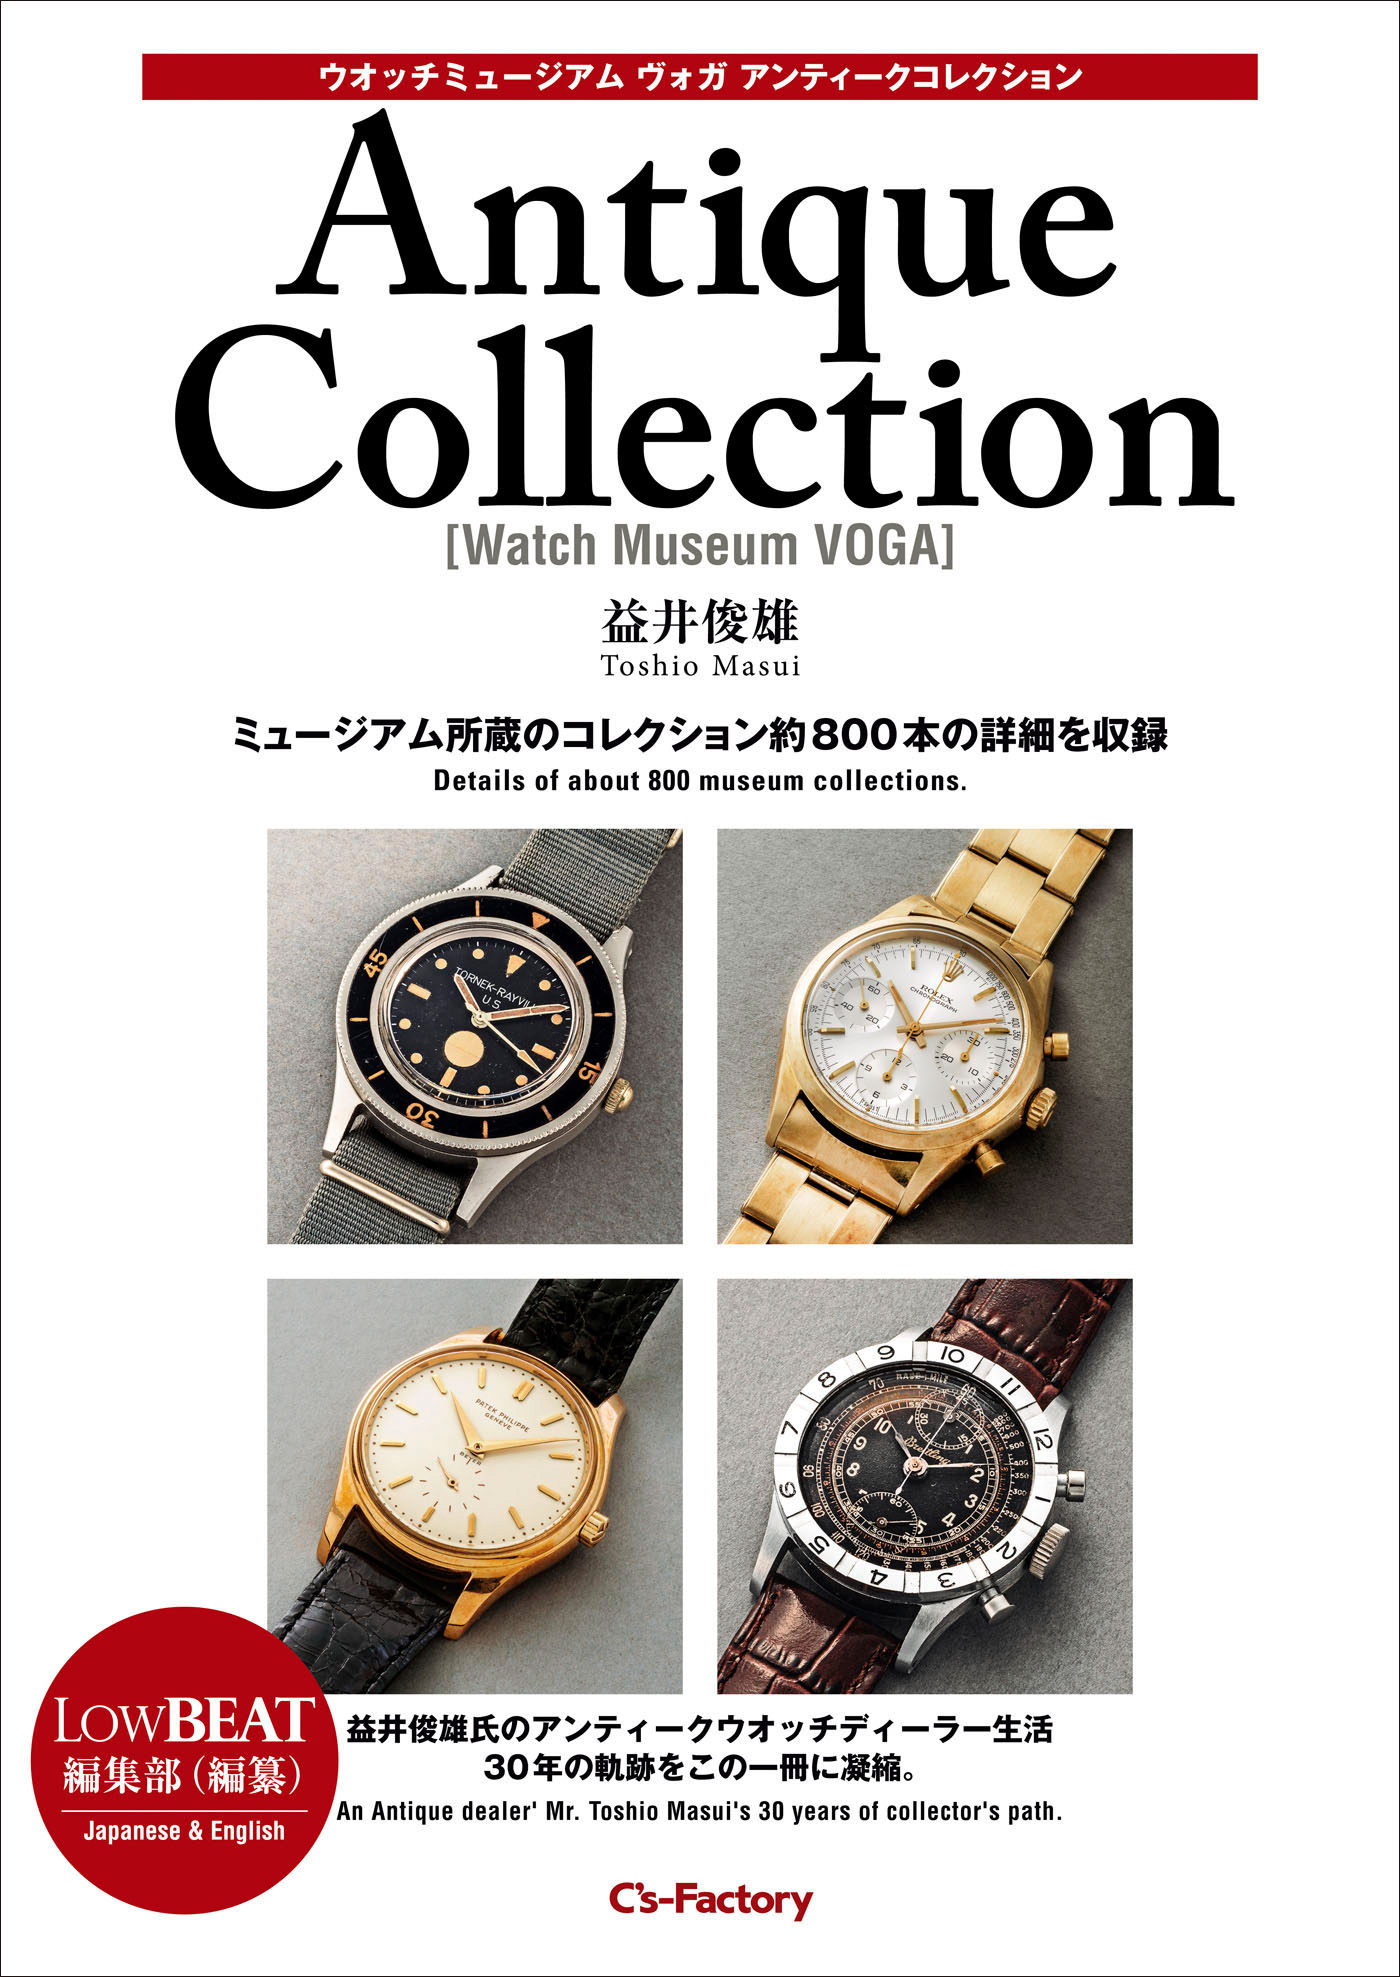 C's-Factory|電子書籍|Watch Museum VOGA Antique Collection